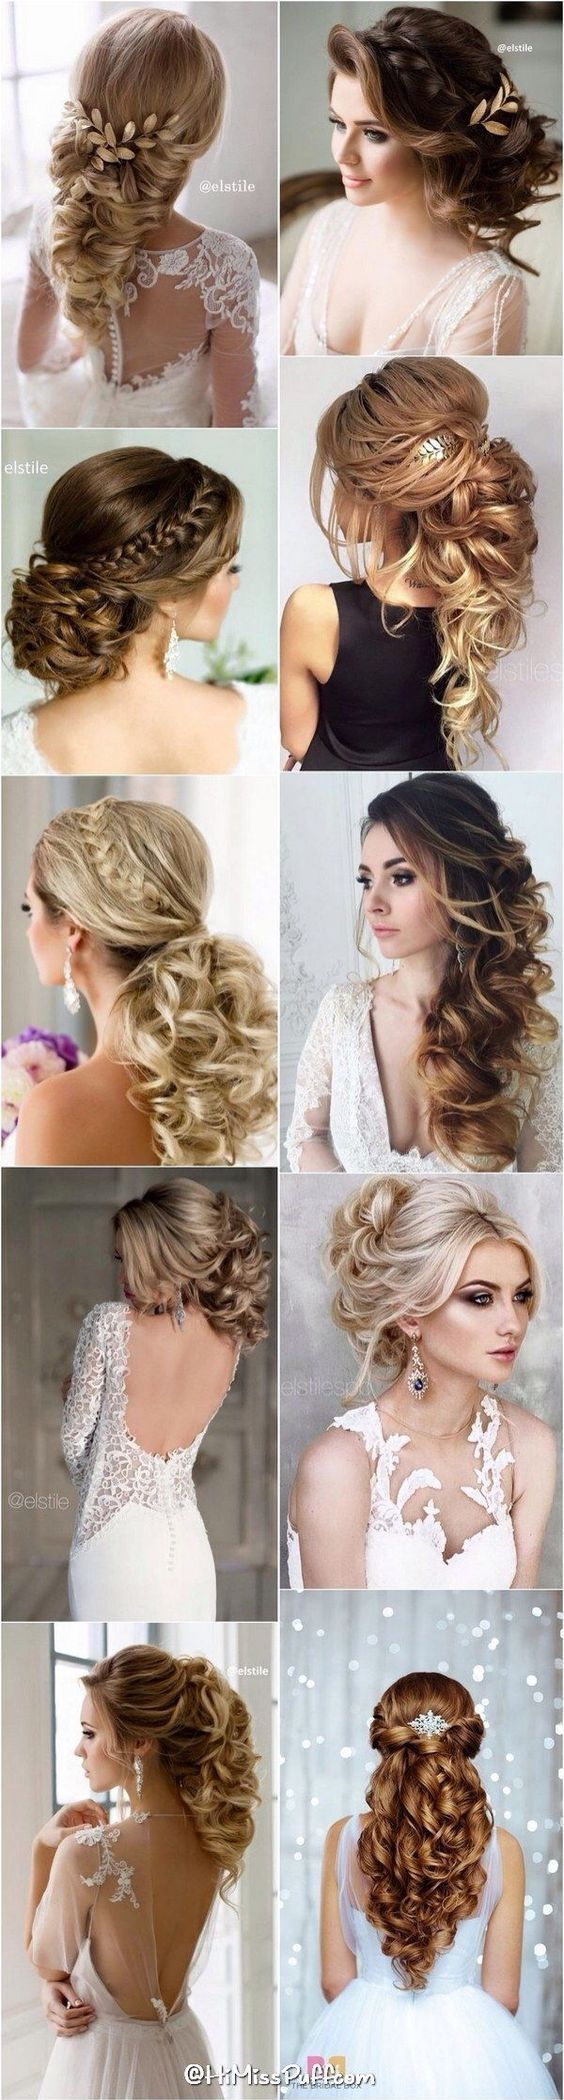 best hair images on pinterest hairstyle ideas bridal